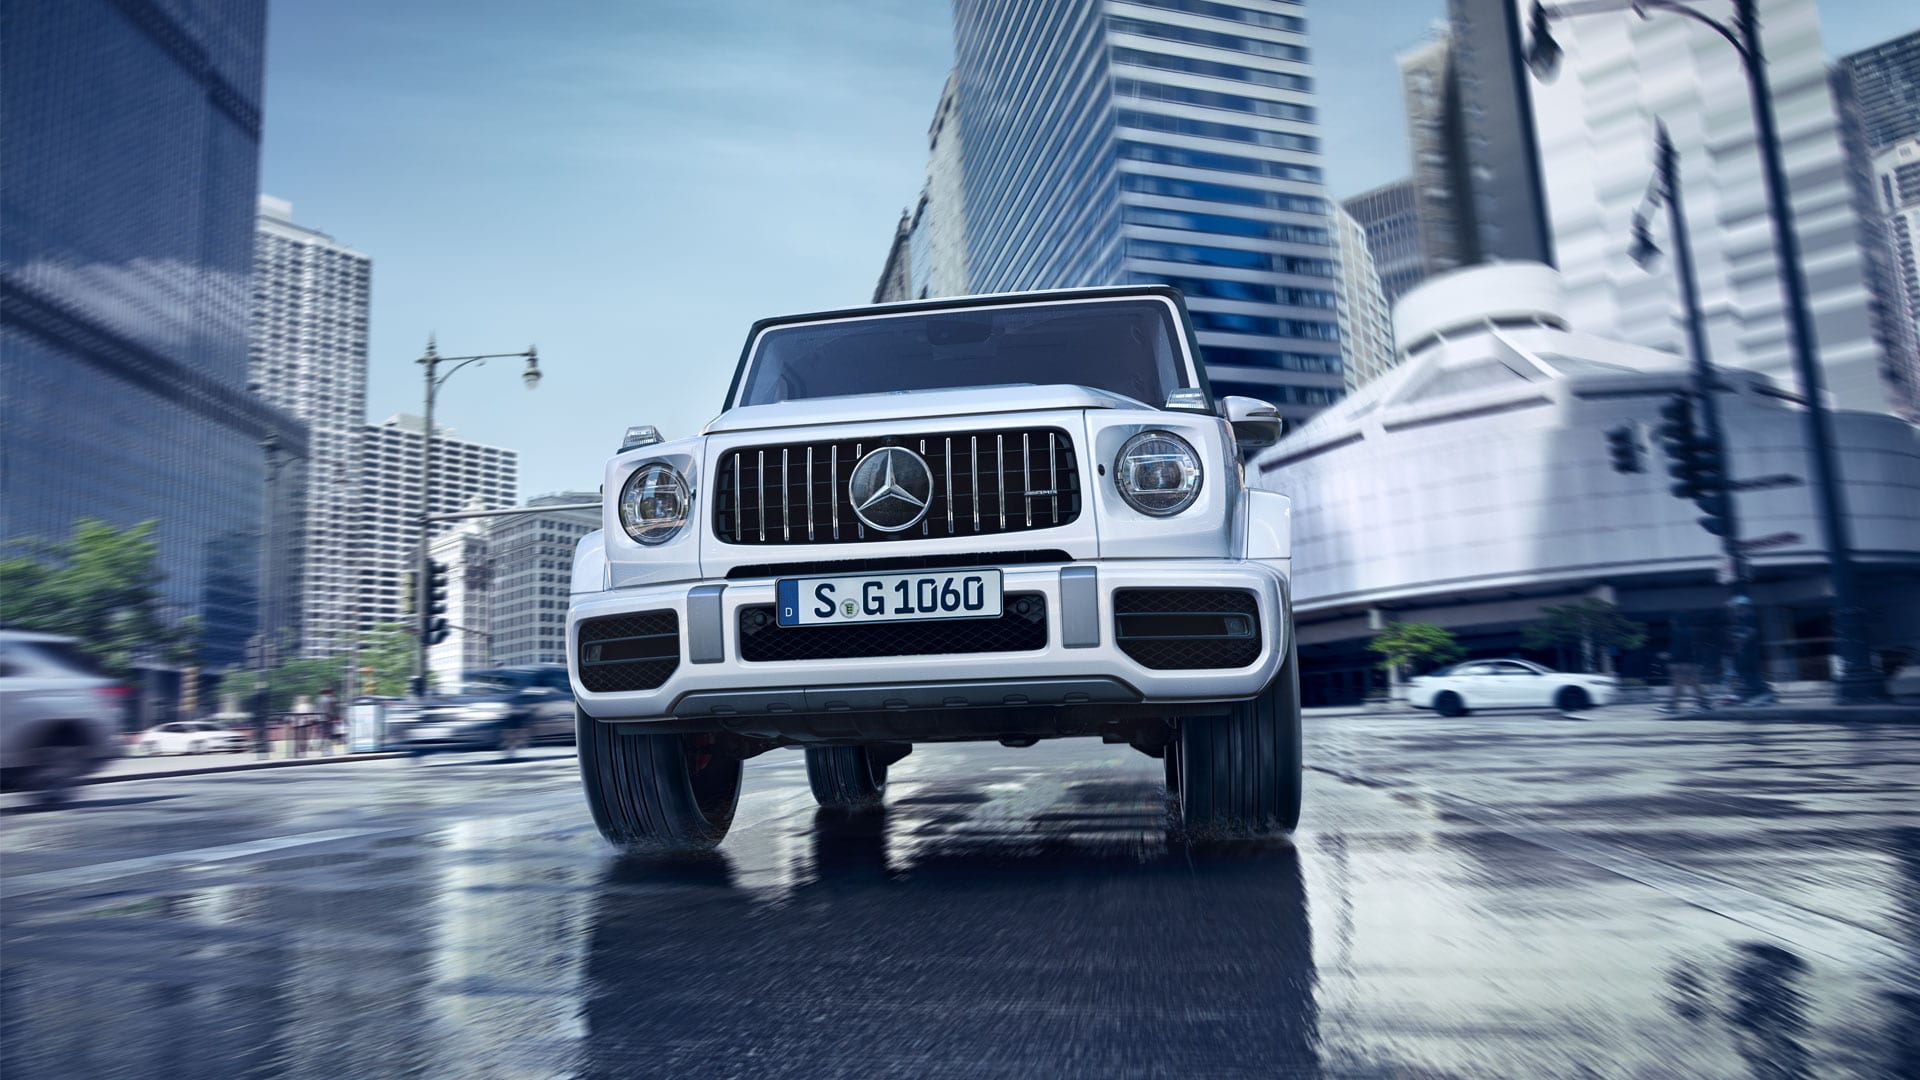 Location Mercedes AMG G63 SUV   Deluxe Rental Cars Lausanne